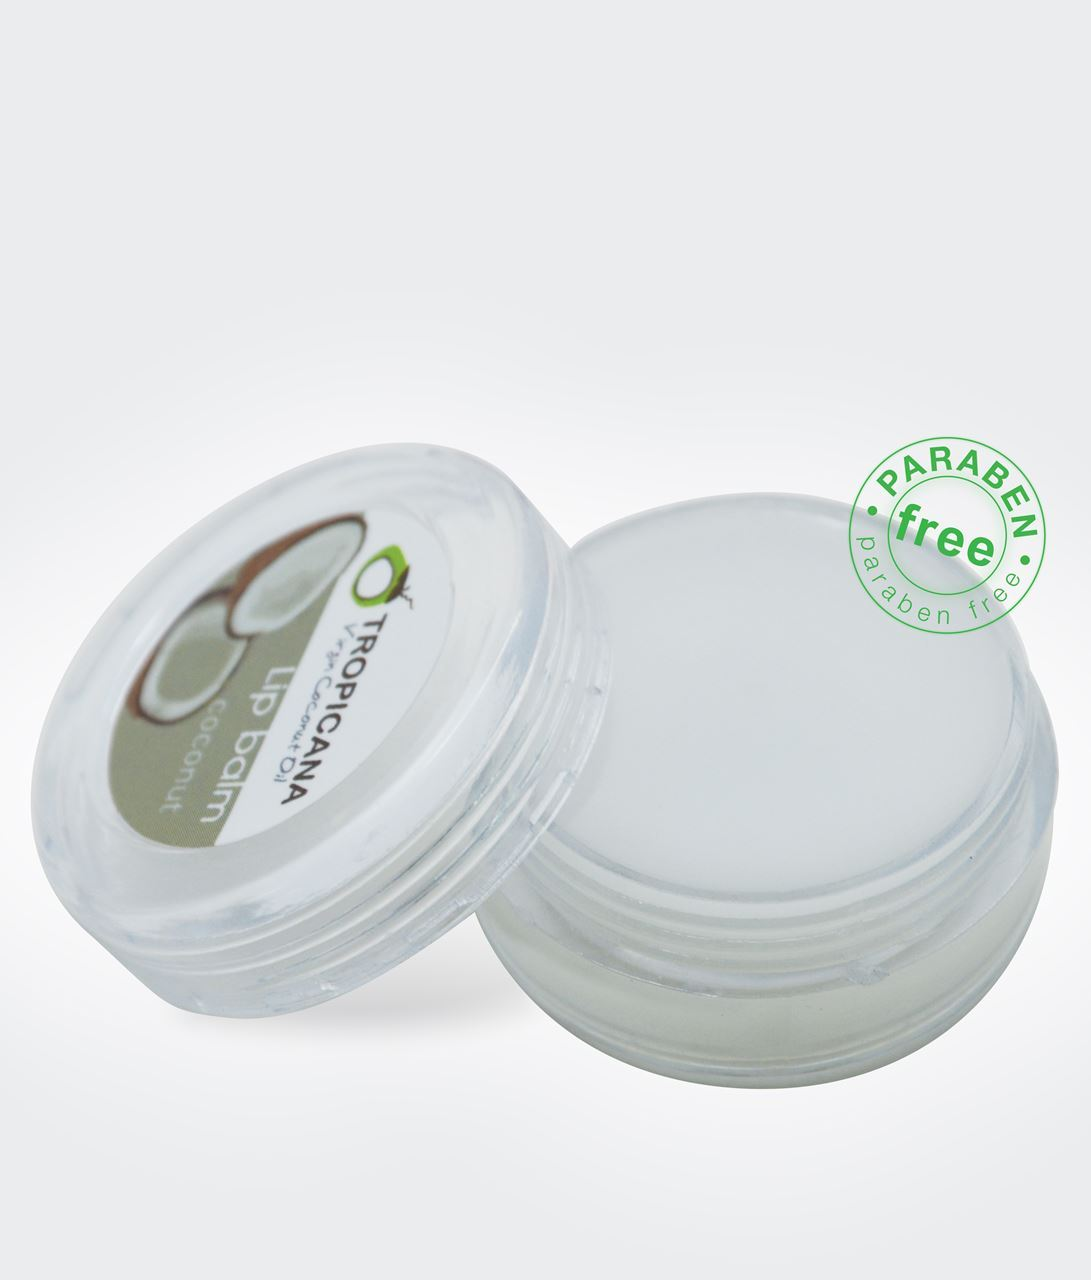 Thai Herbal At Home : Natural Herbal Virgin Coconut Oil Lip Balm 10 g.